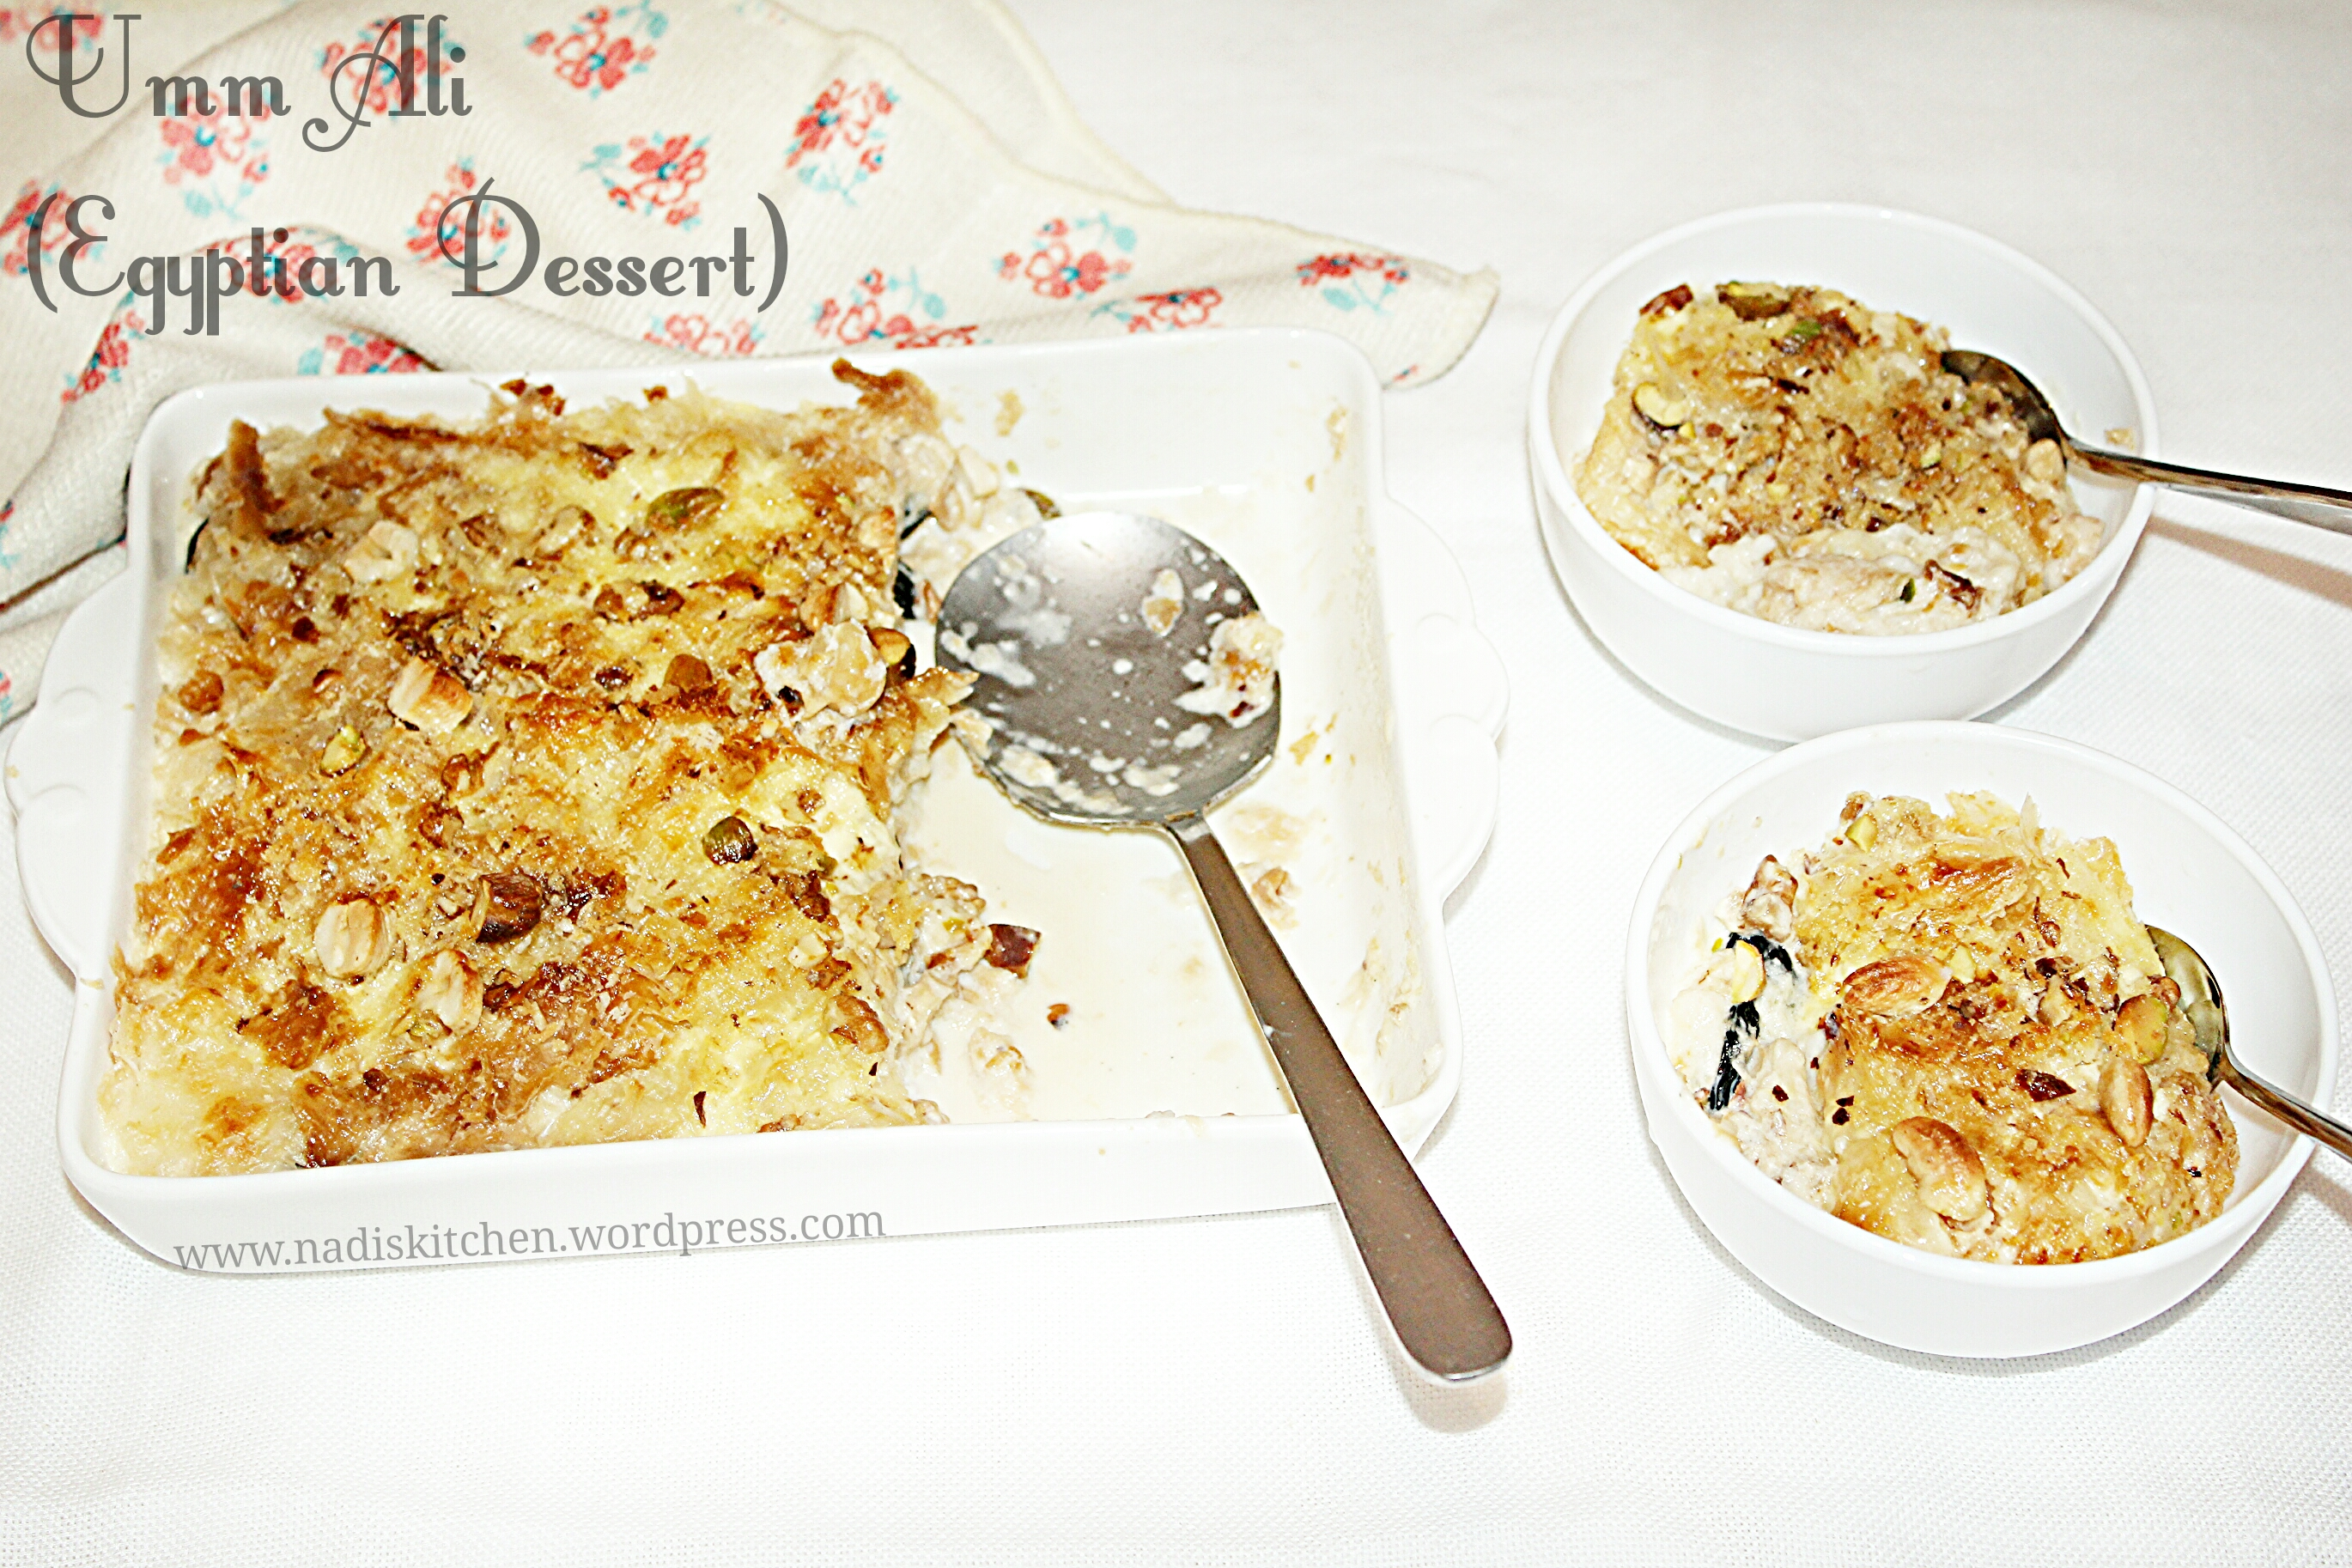 Umm ali (Egyptia dessert with puff pastry)